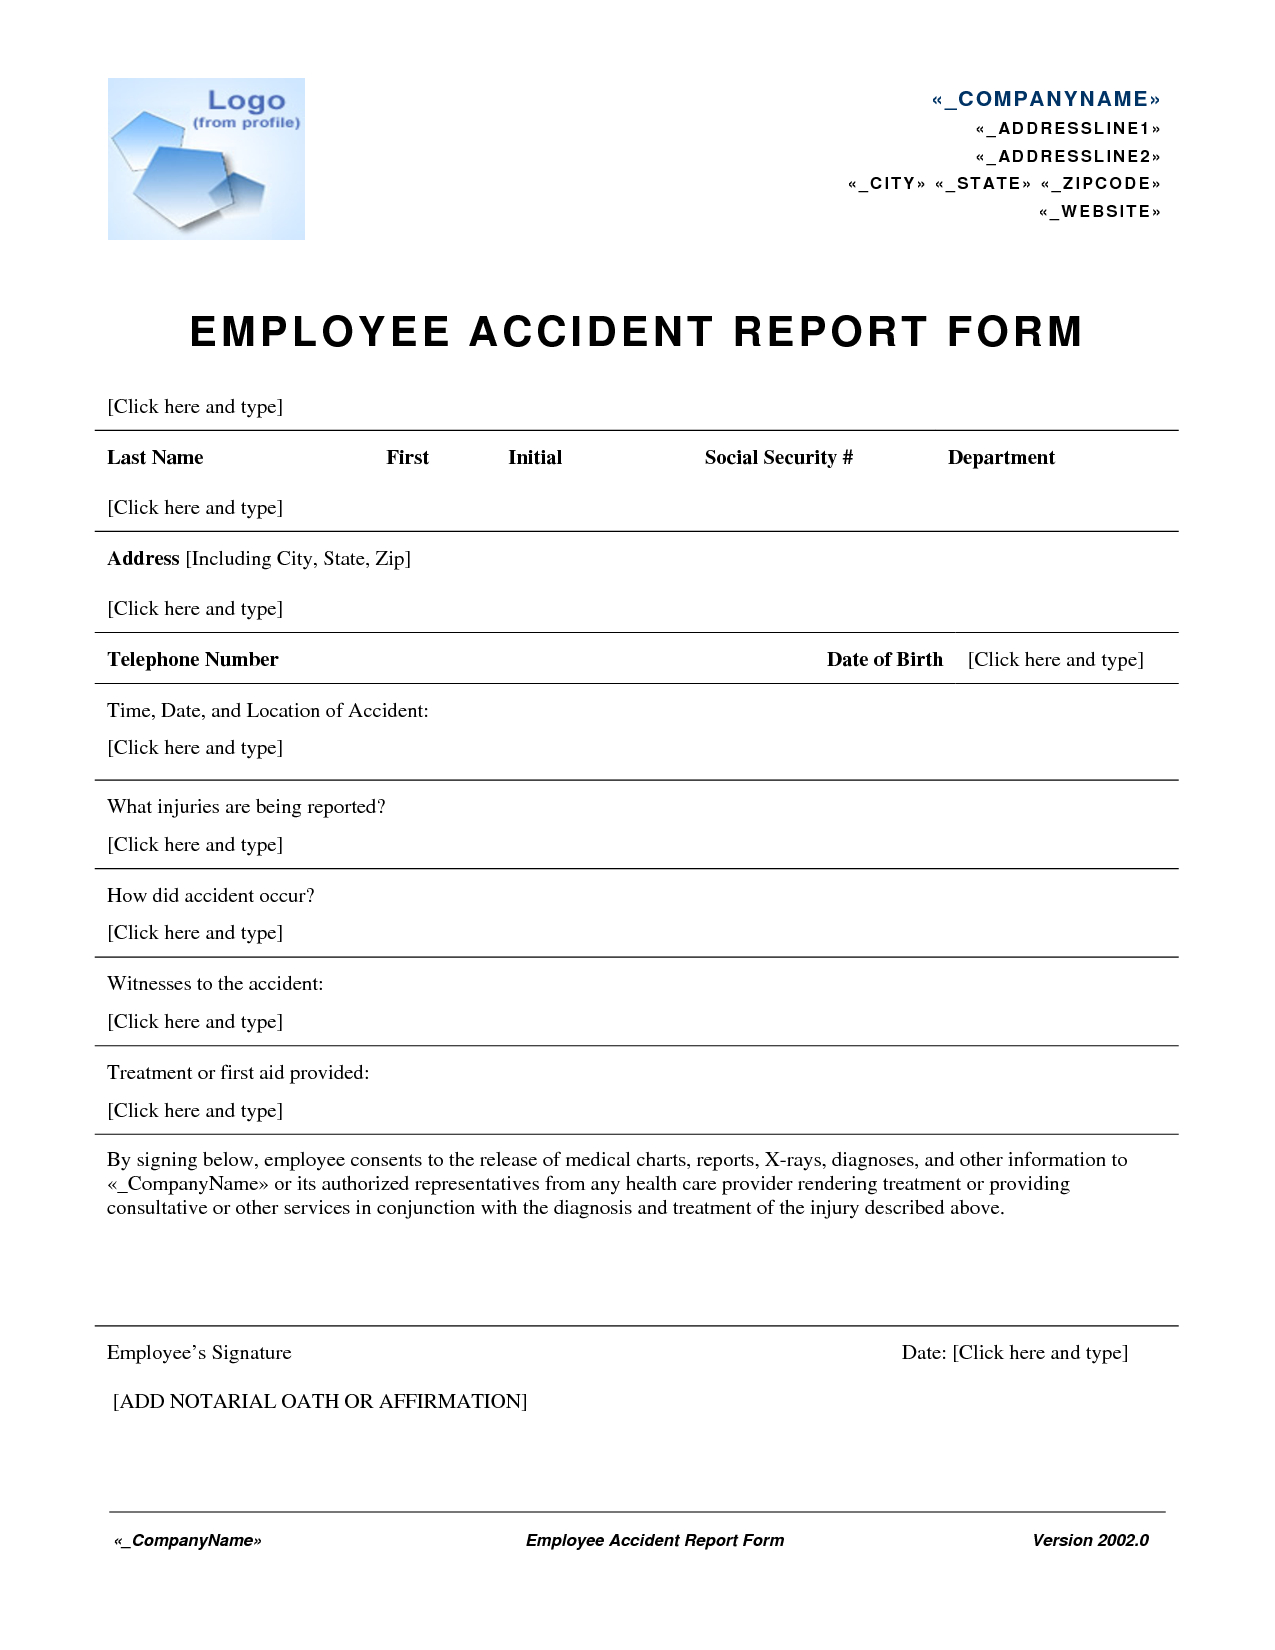 Incident Report Form Workplace Health And Safety Sample Letter In Inside Incident Report Form Template Qld